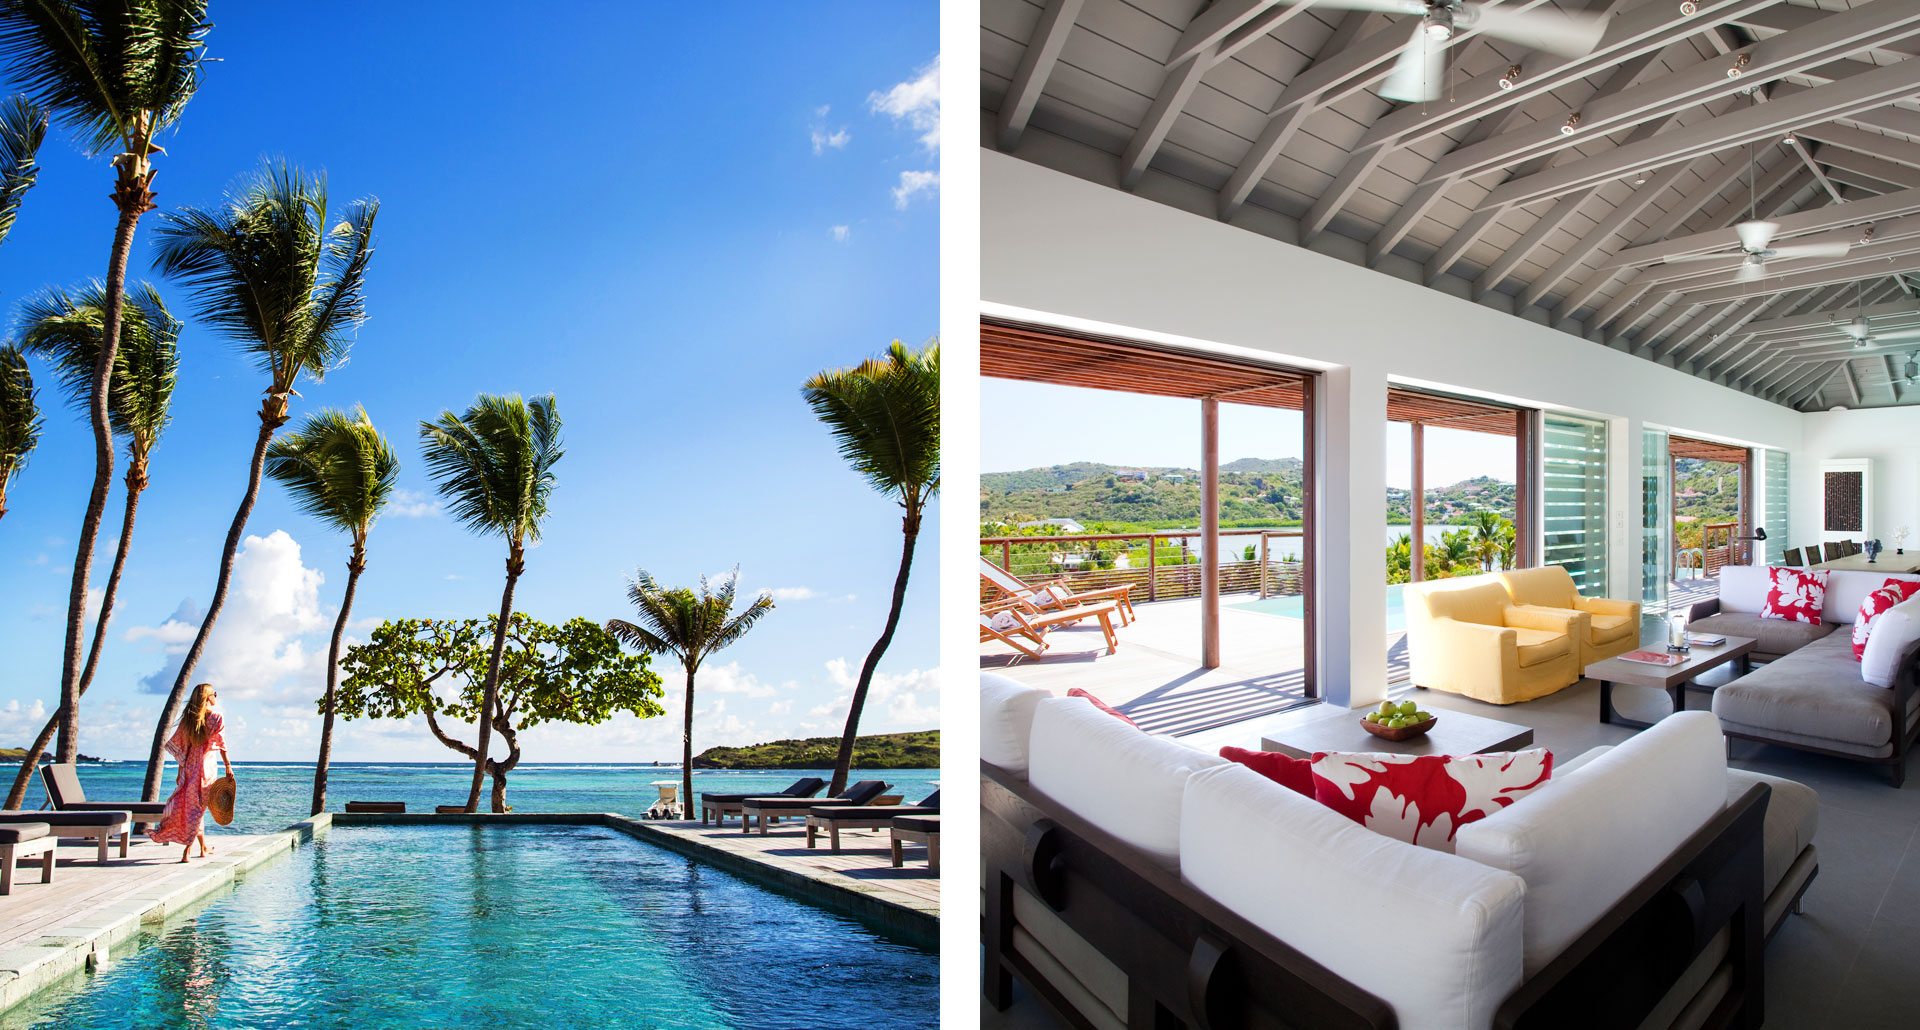 Le Sereno - boutique hotel in St Barthelemy